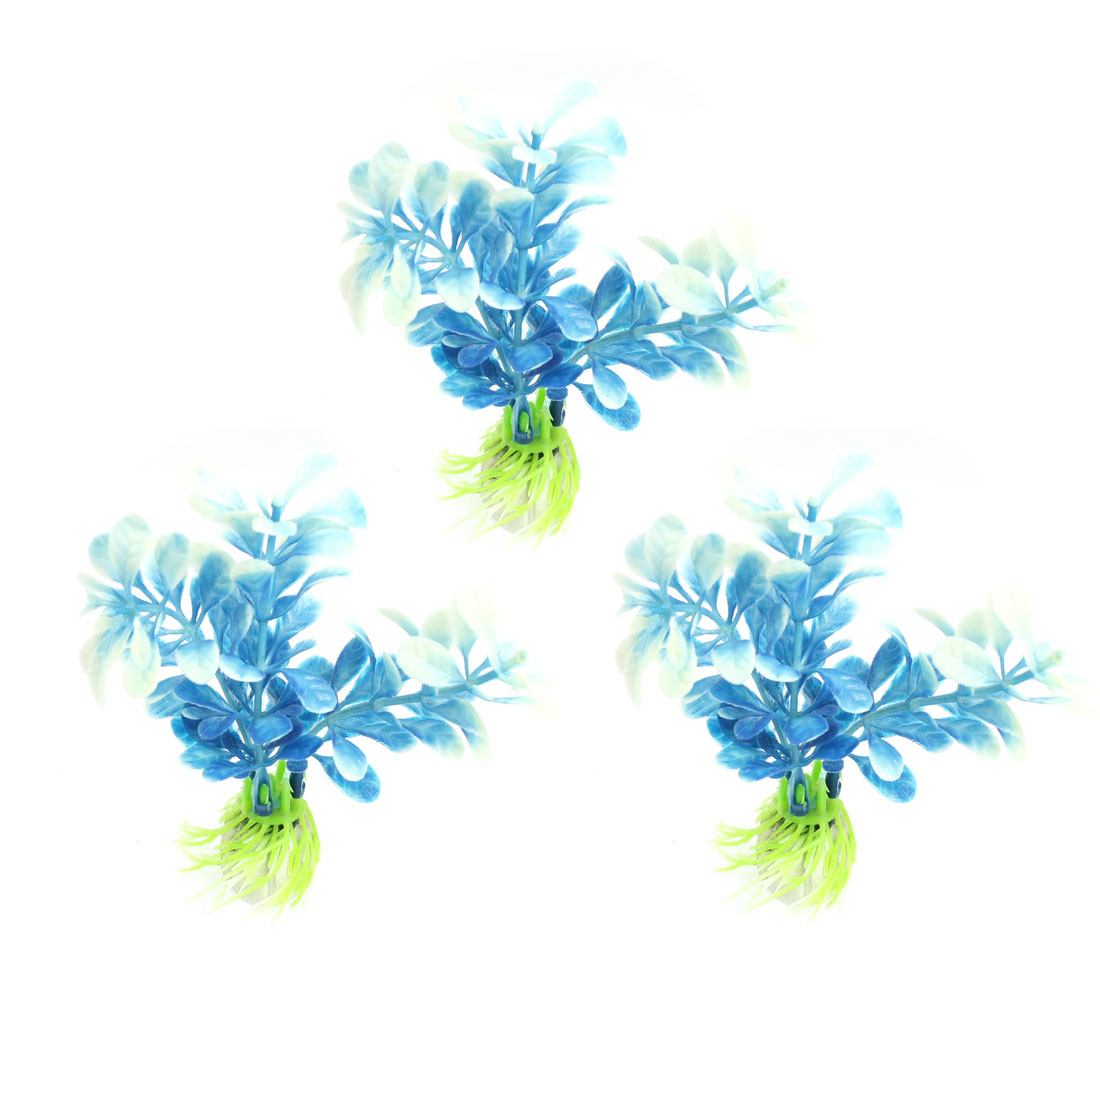 3 Pcs Aquarium Tank Blue White Plastic Artificial Grass Plant 4.3""